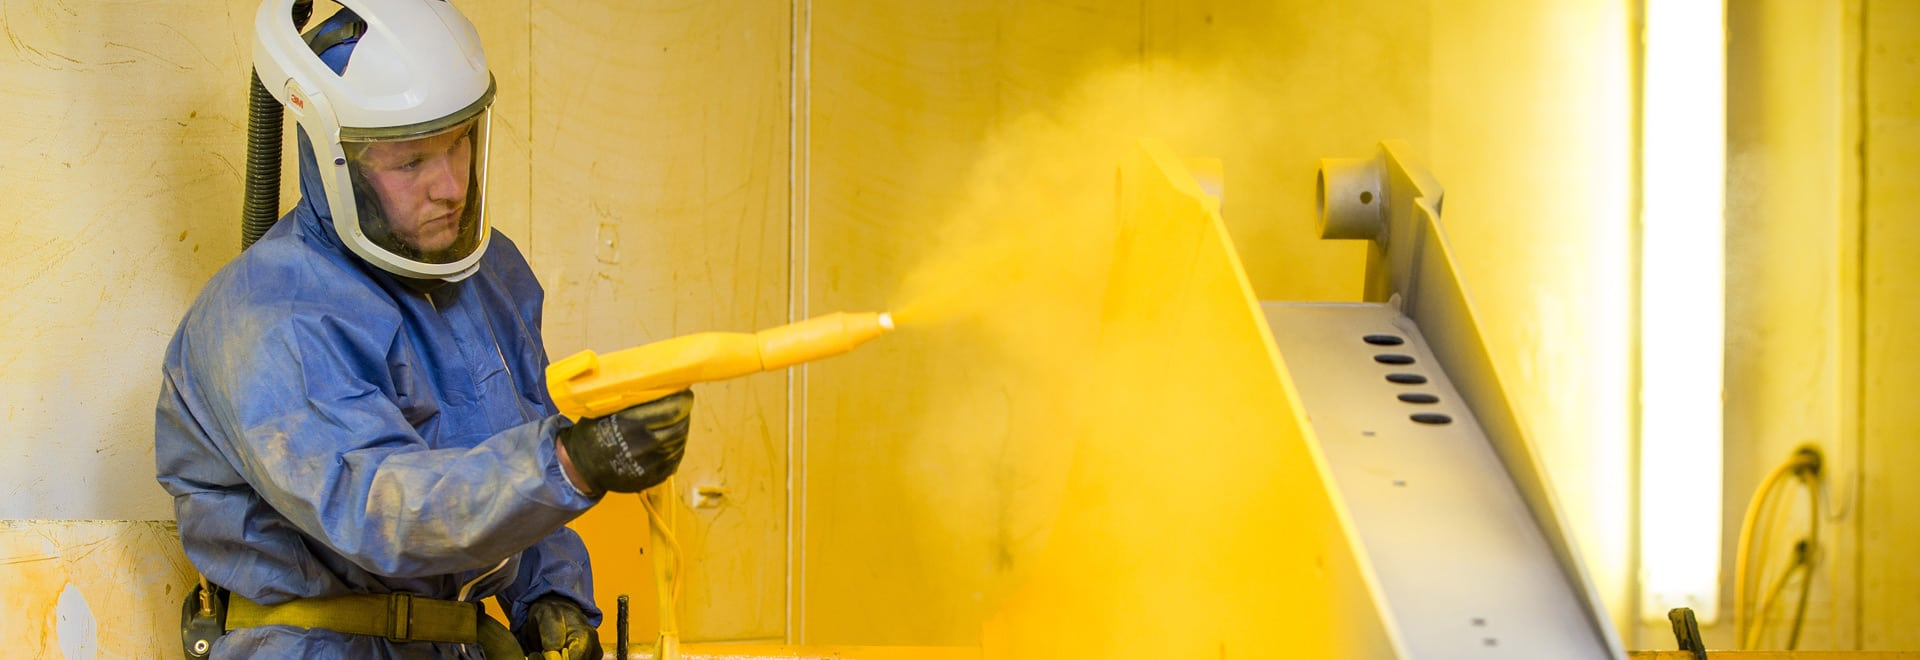 homepage industrial spray painting service uk pym and